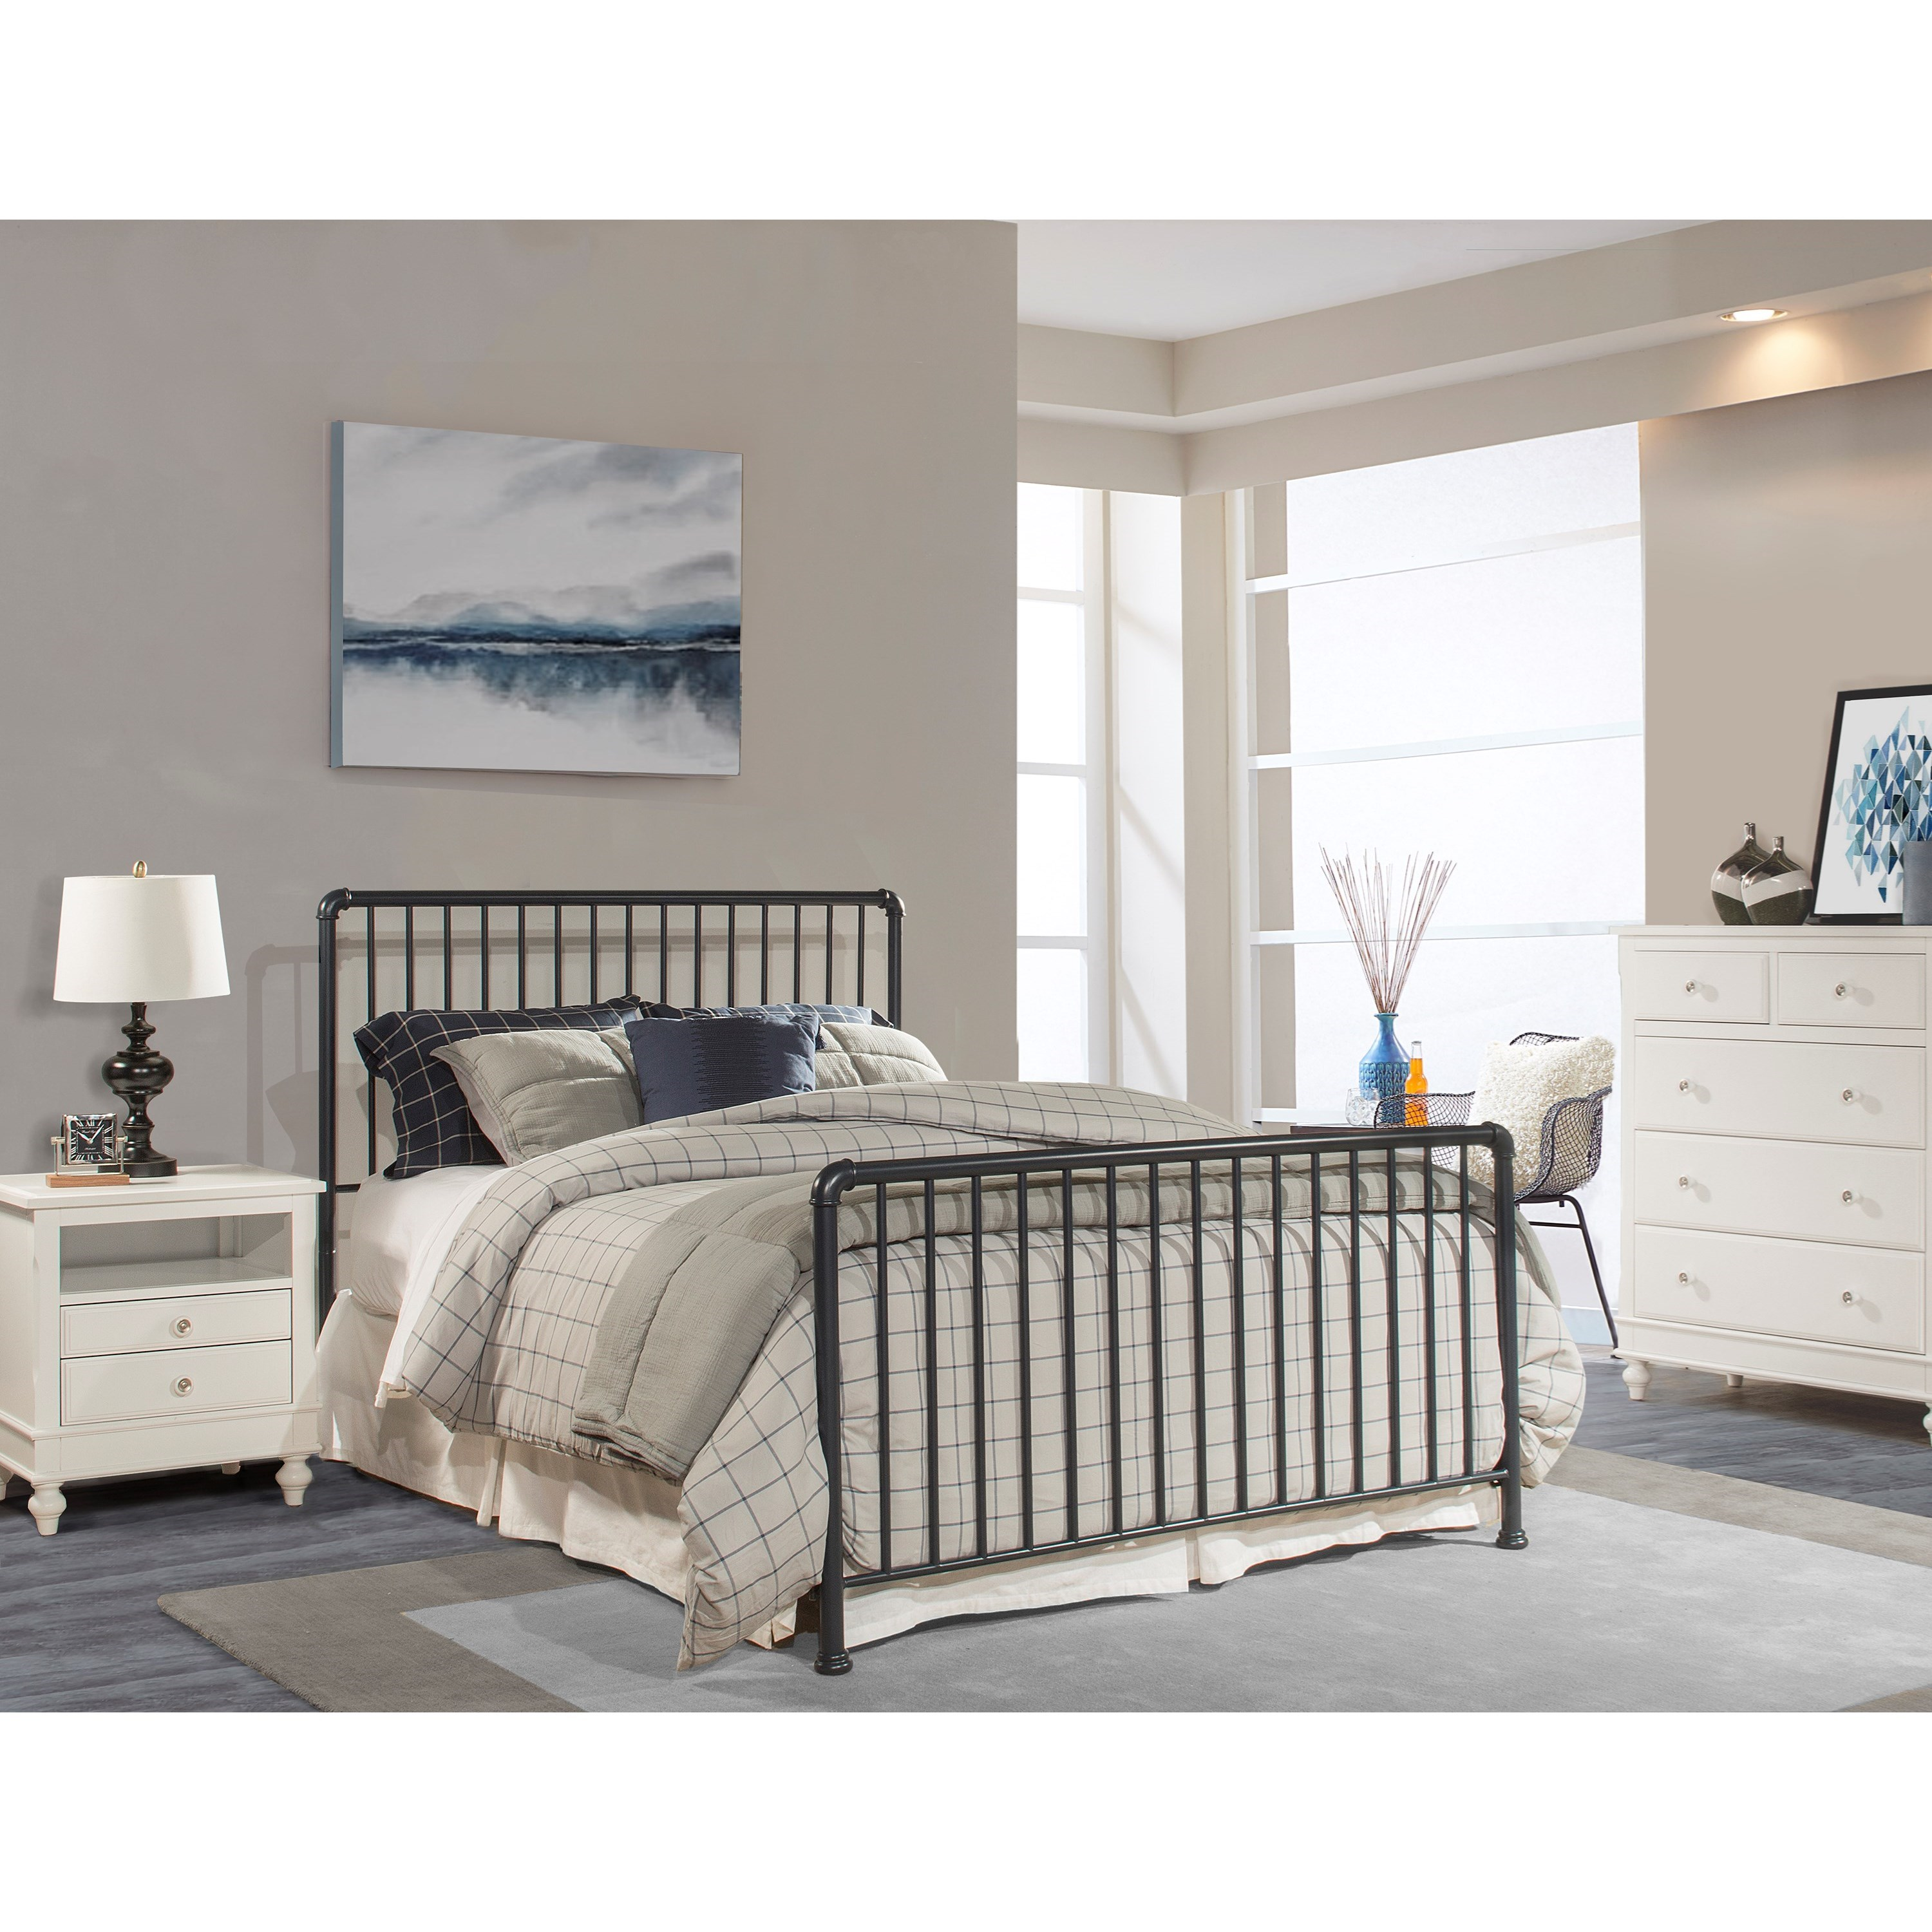 Twin Bed Set - Frame not Included